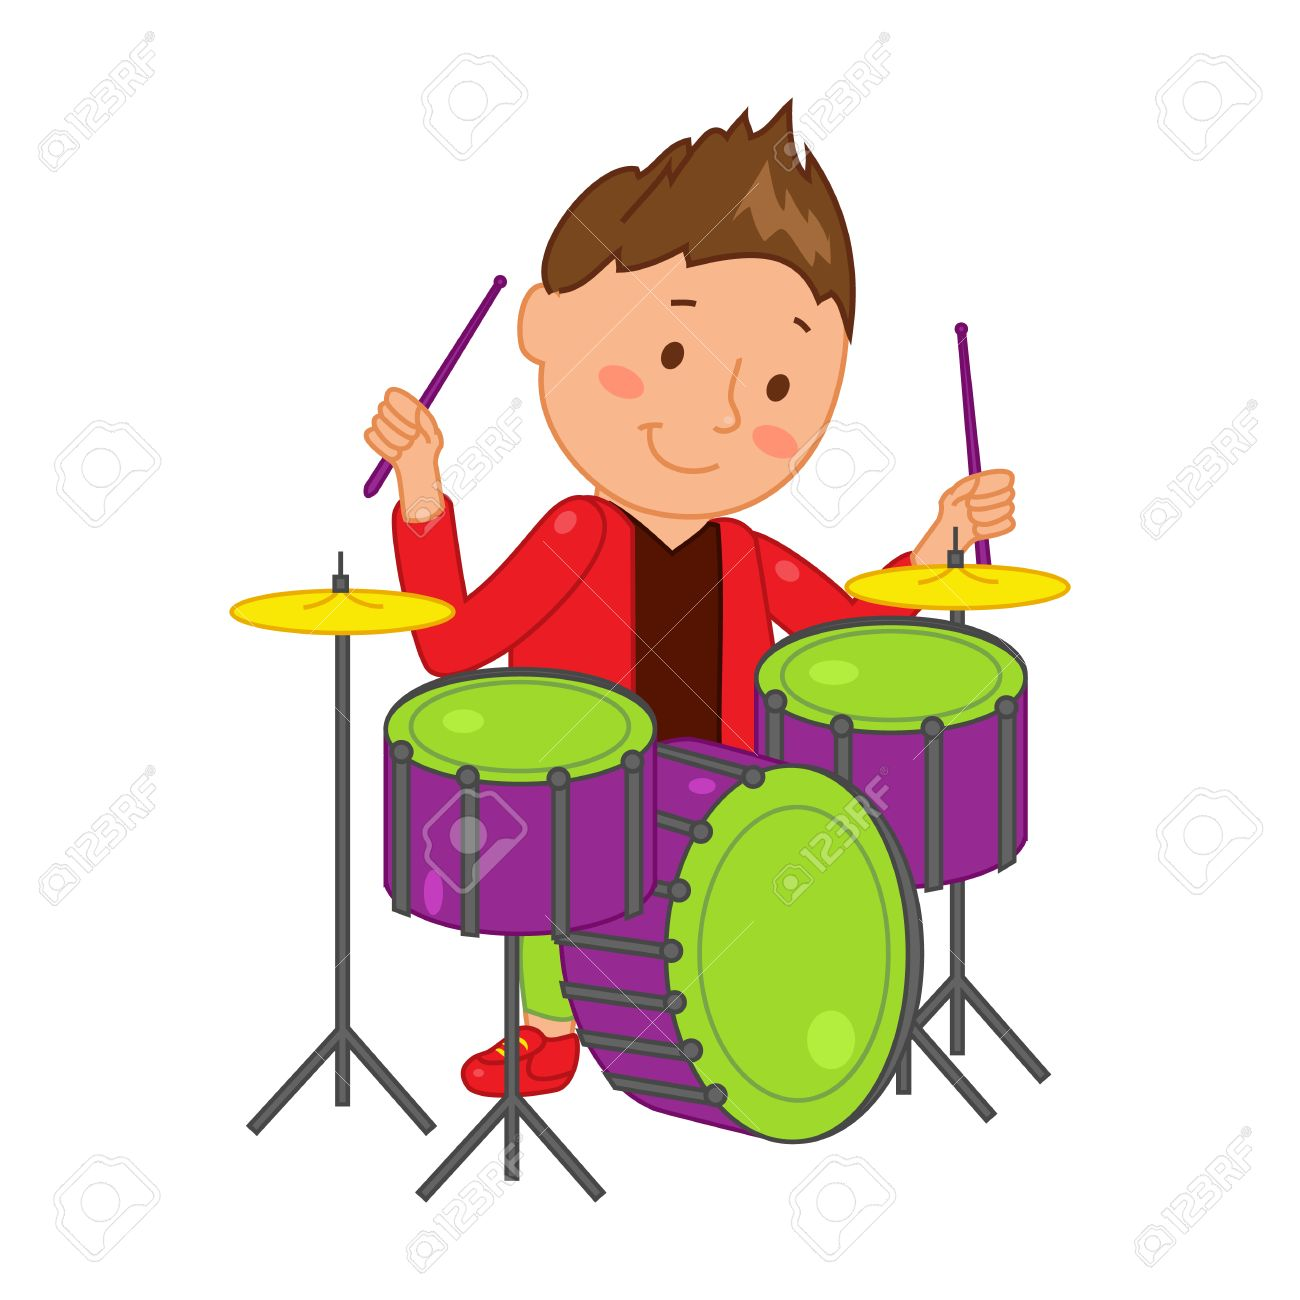 538 Musician free clipart.